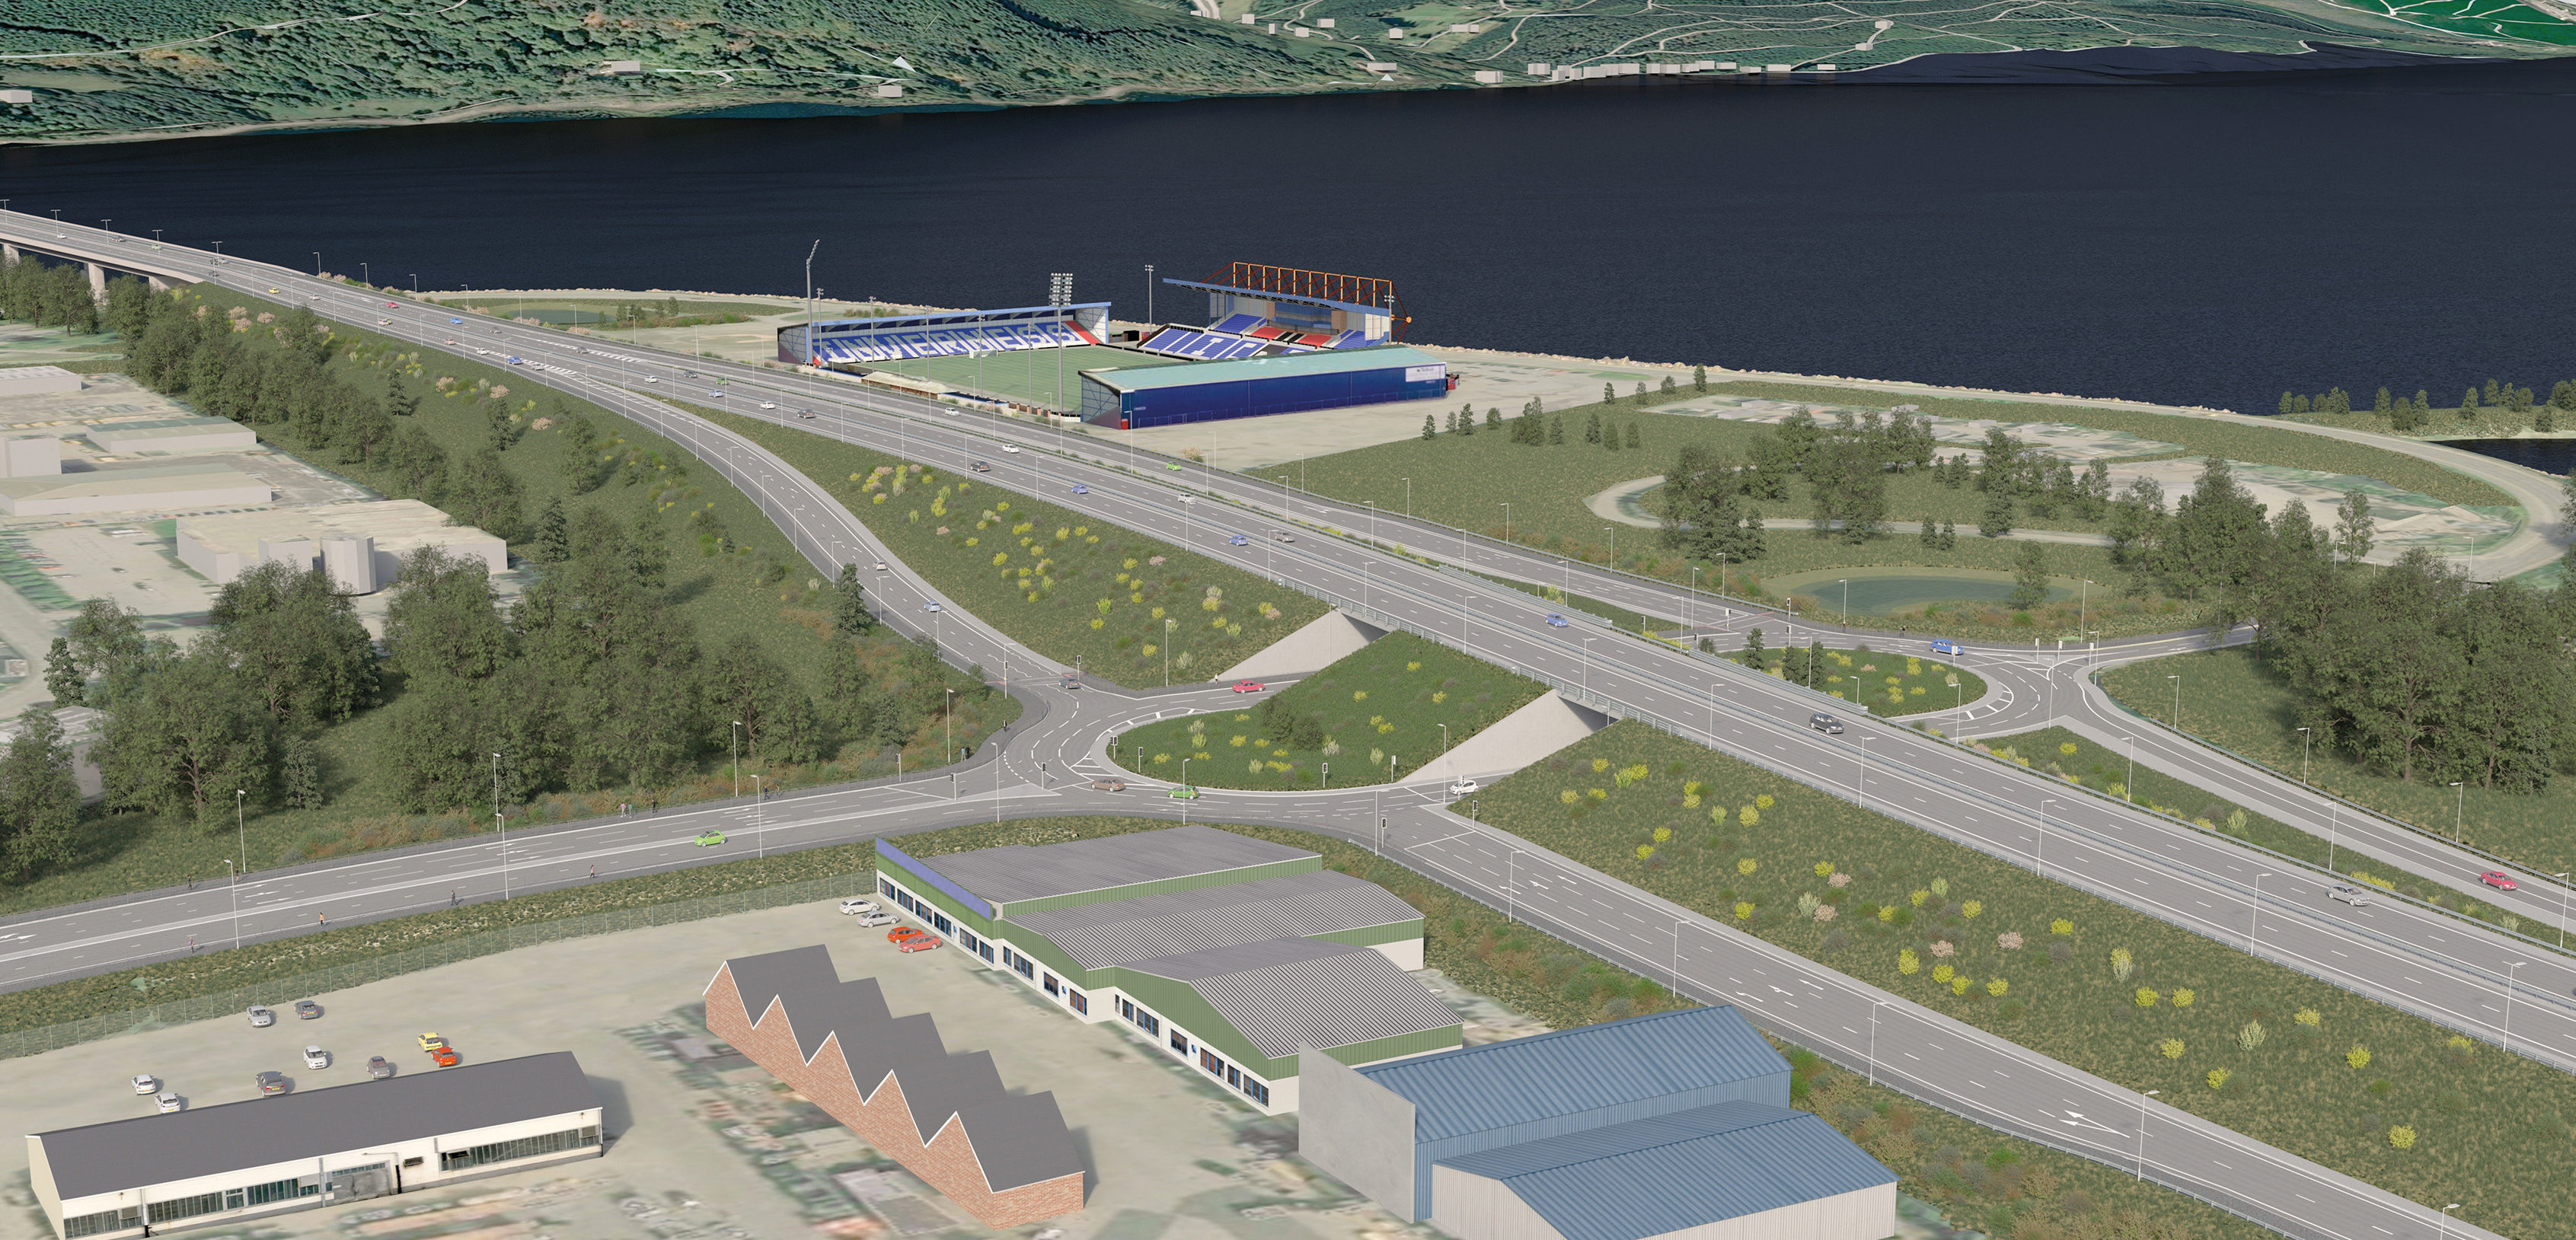 A virtual reality image of the preferred option to address the traffic woes at Inverness' Longman roundabout.